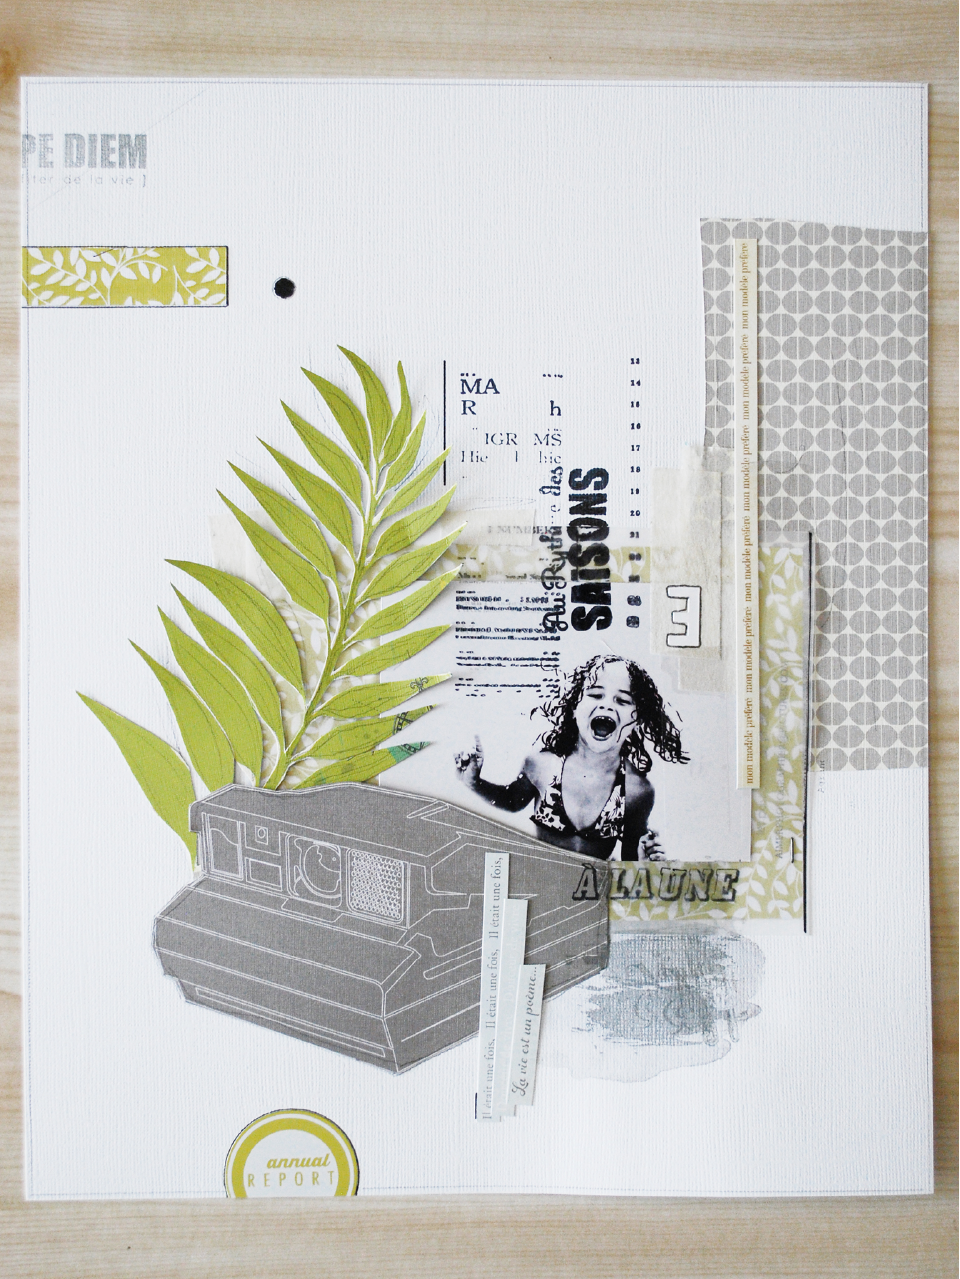 kesi-art-page-scrapbooking-inspiration-prisca2